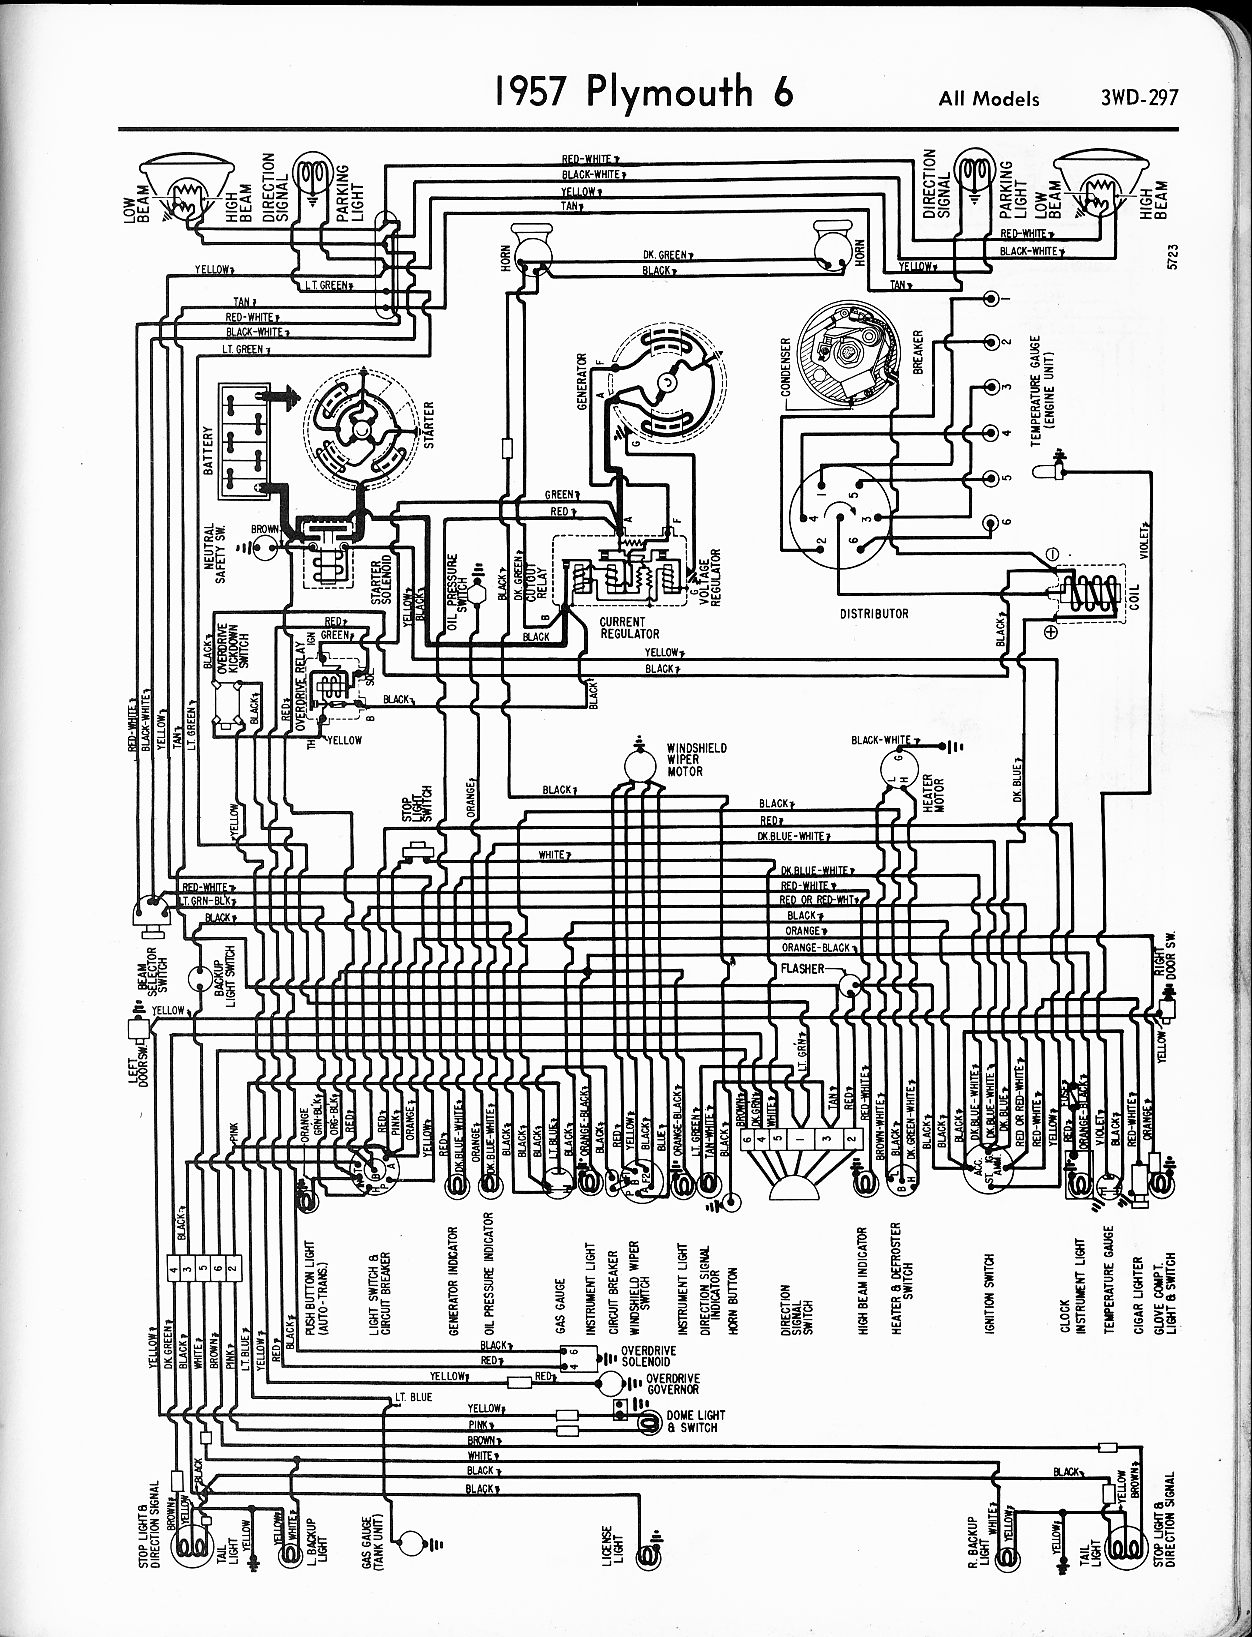 1967 Barracuda Wiring Diagrams Expert Dodge Charger Plymouth Diagram Auto Electrical Gto